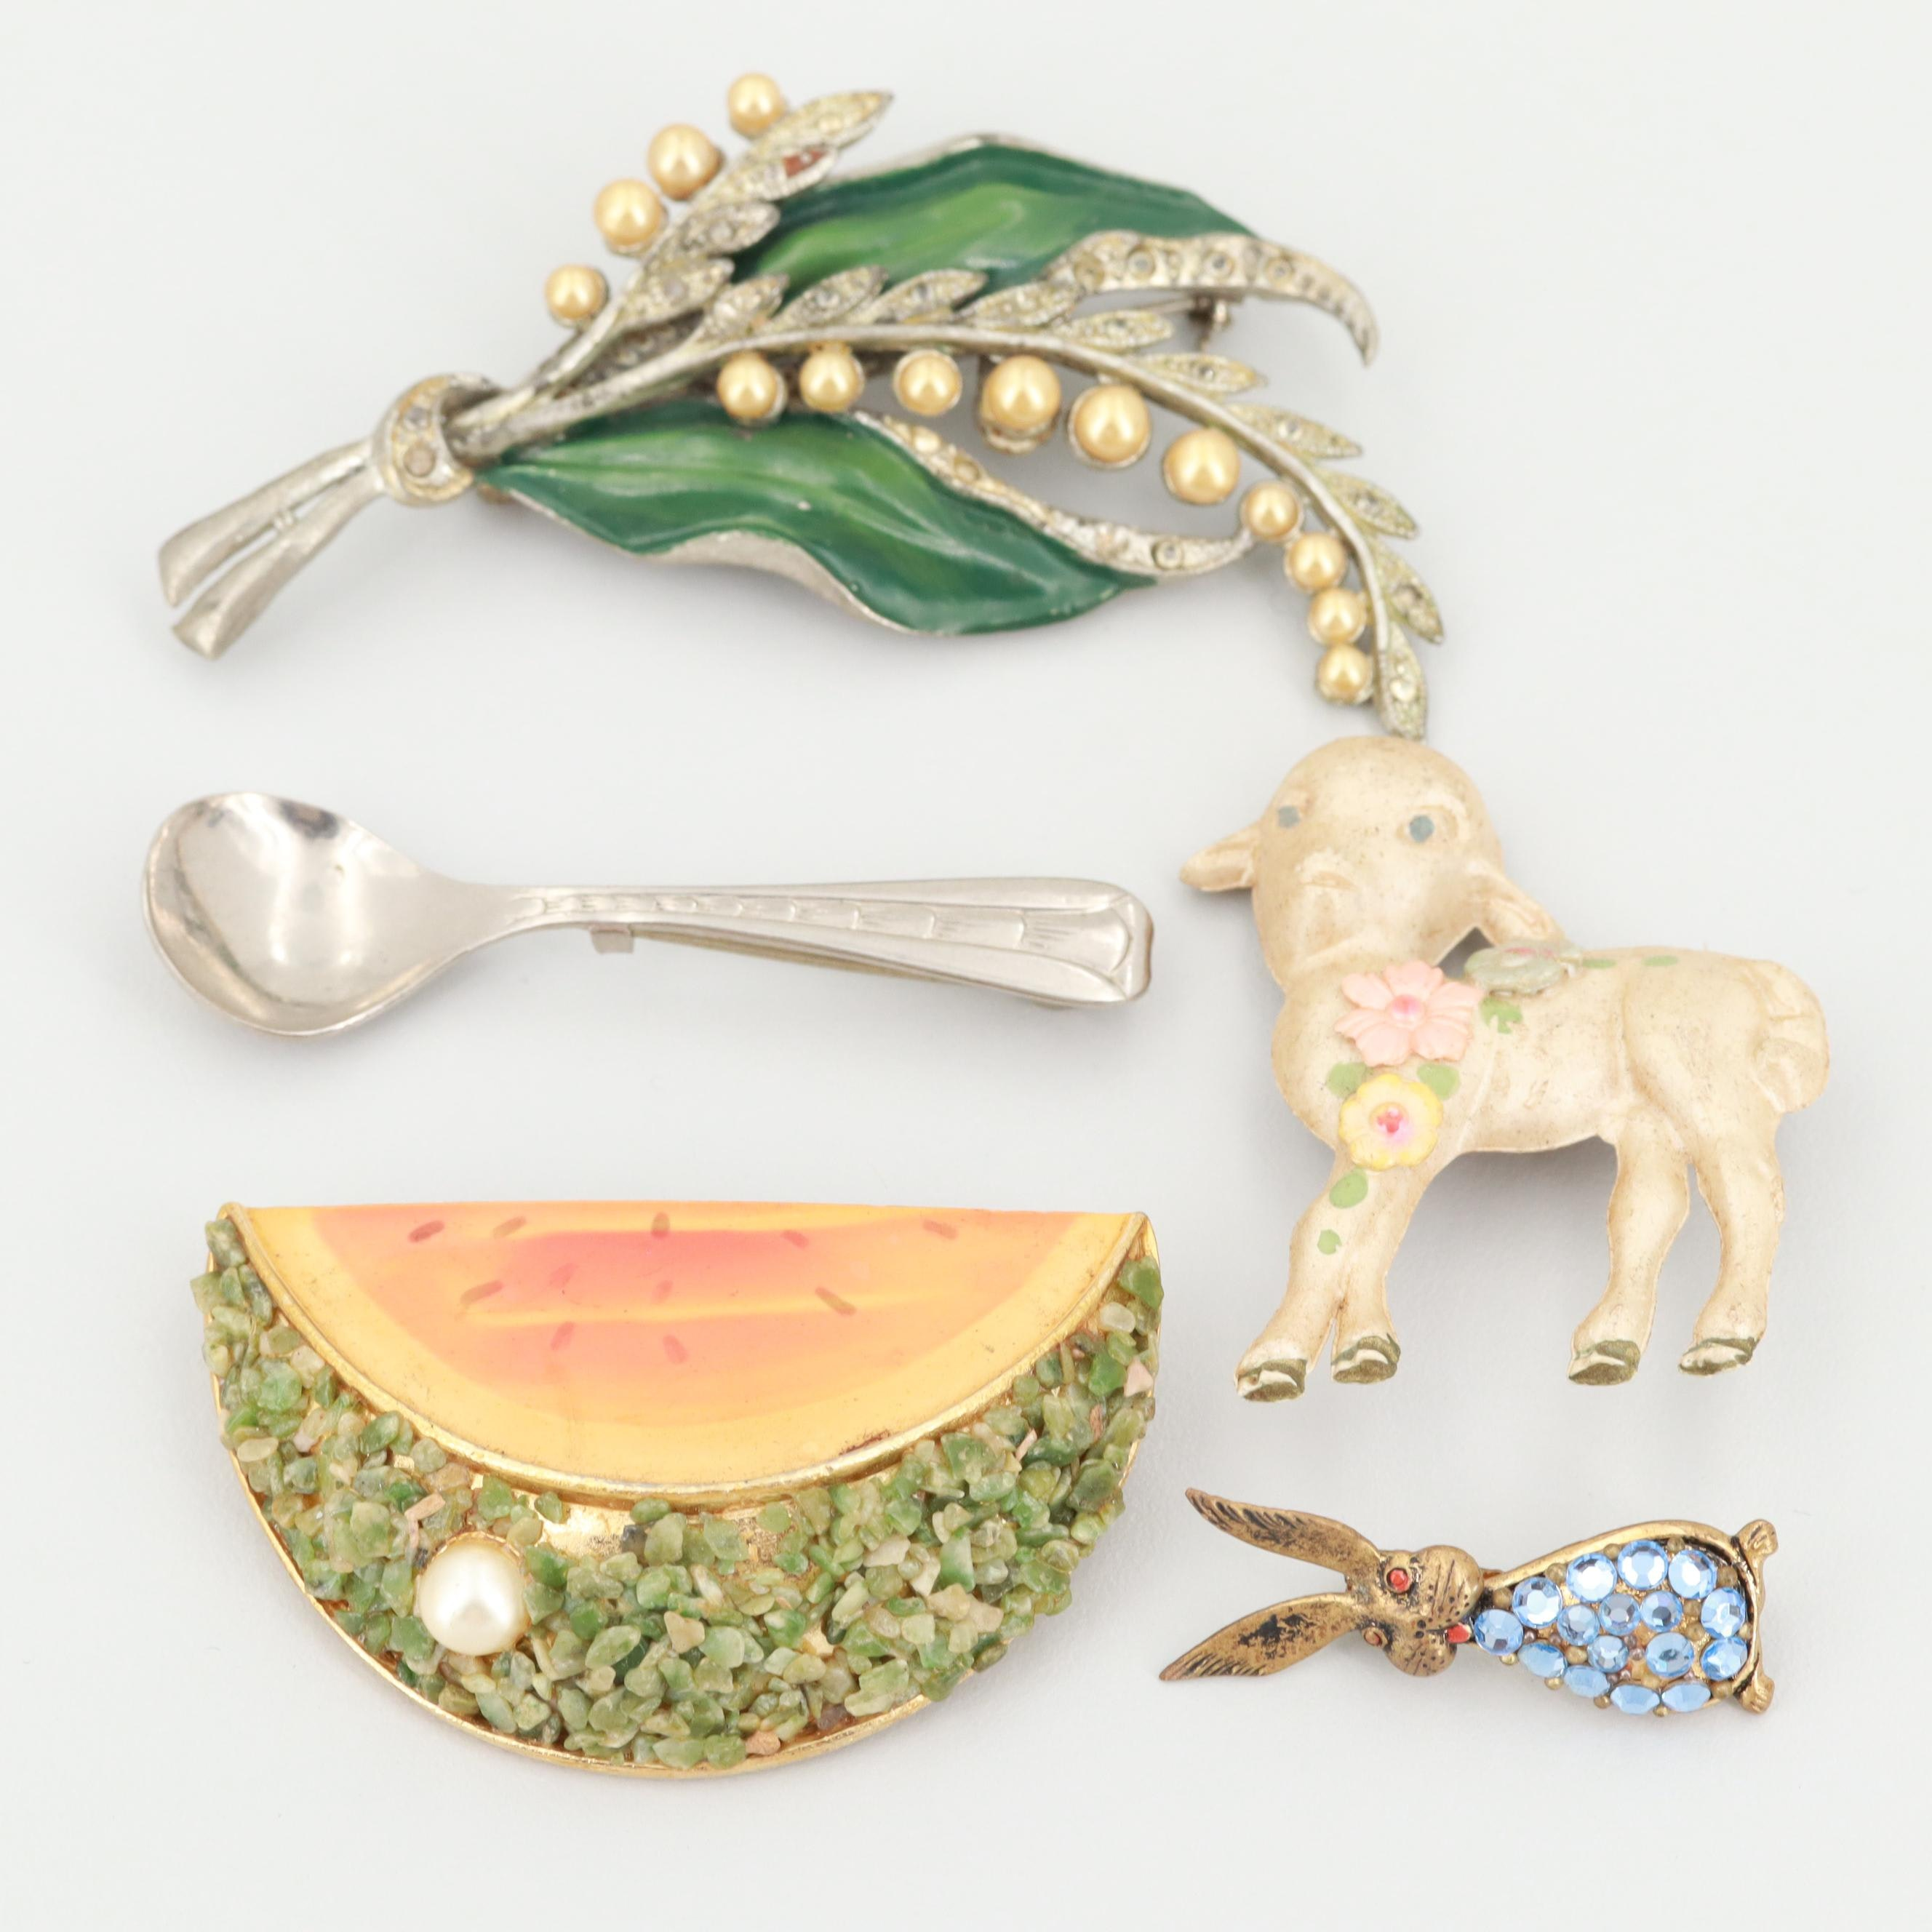 Vintage Gold and Silver-Toned Enamel, Foilbacks and Imitation Pearl Brooches